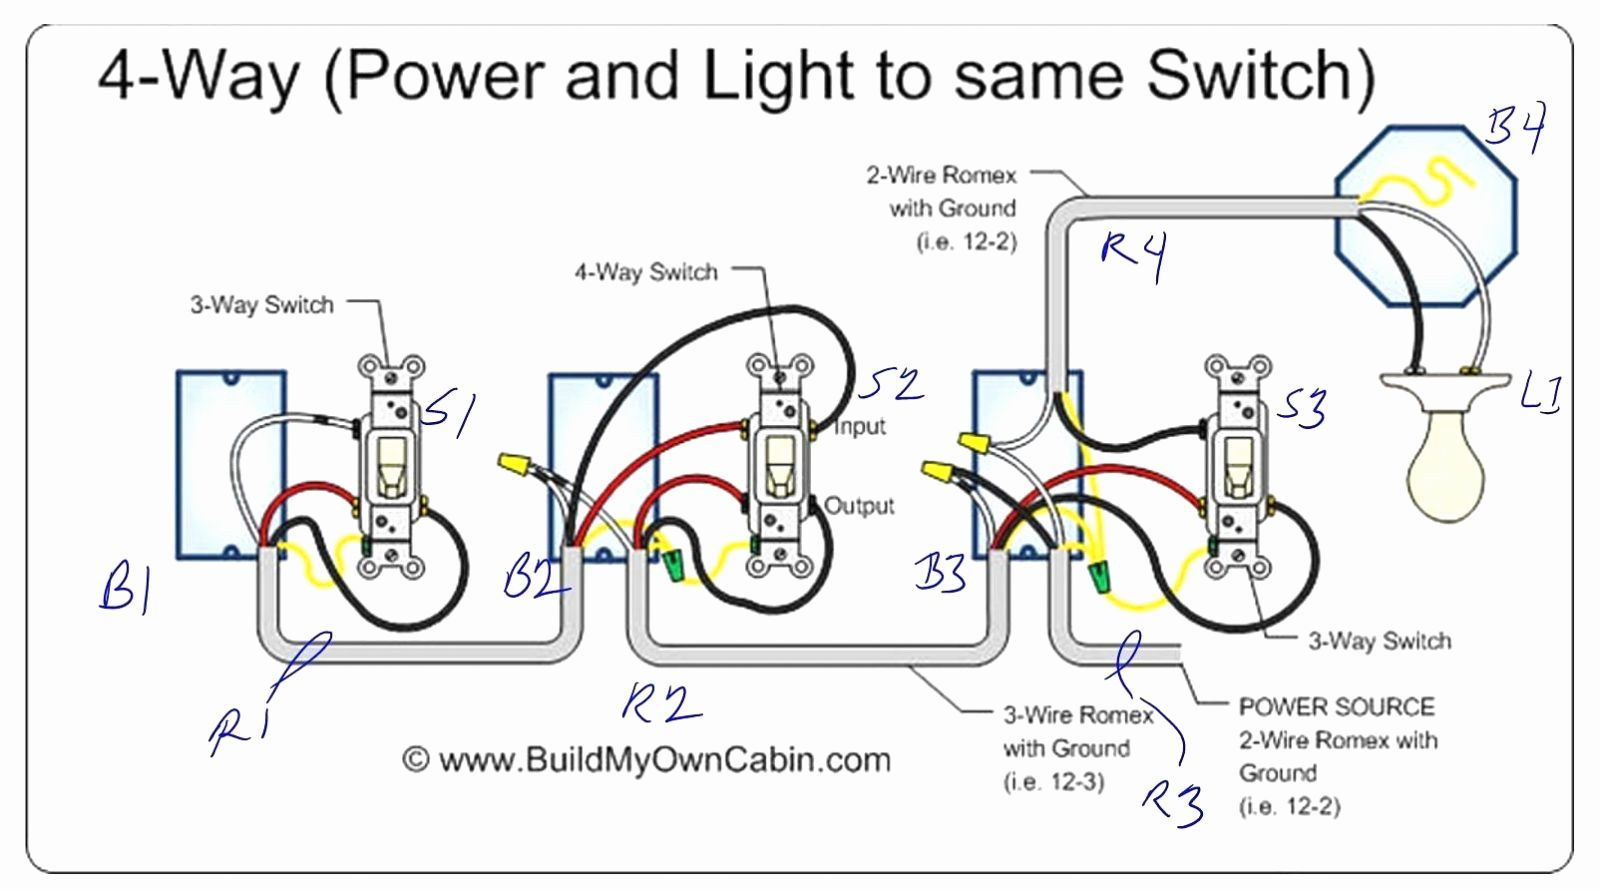 Lutron Dimmer 3 Way Switch Wiring Diagram Power Onward | Wiring Diagram - Lutron 3 Way Switch Wiring Diagram